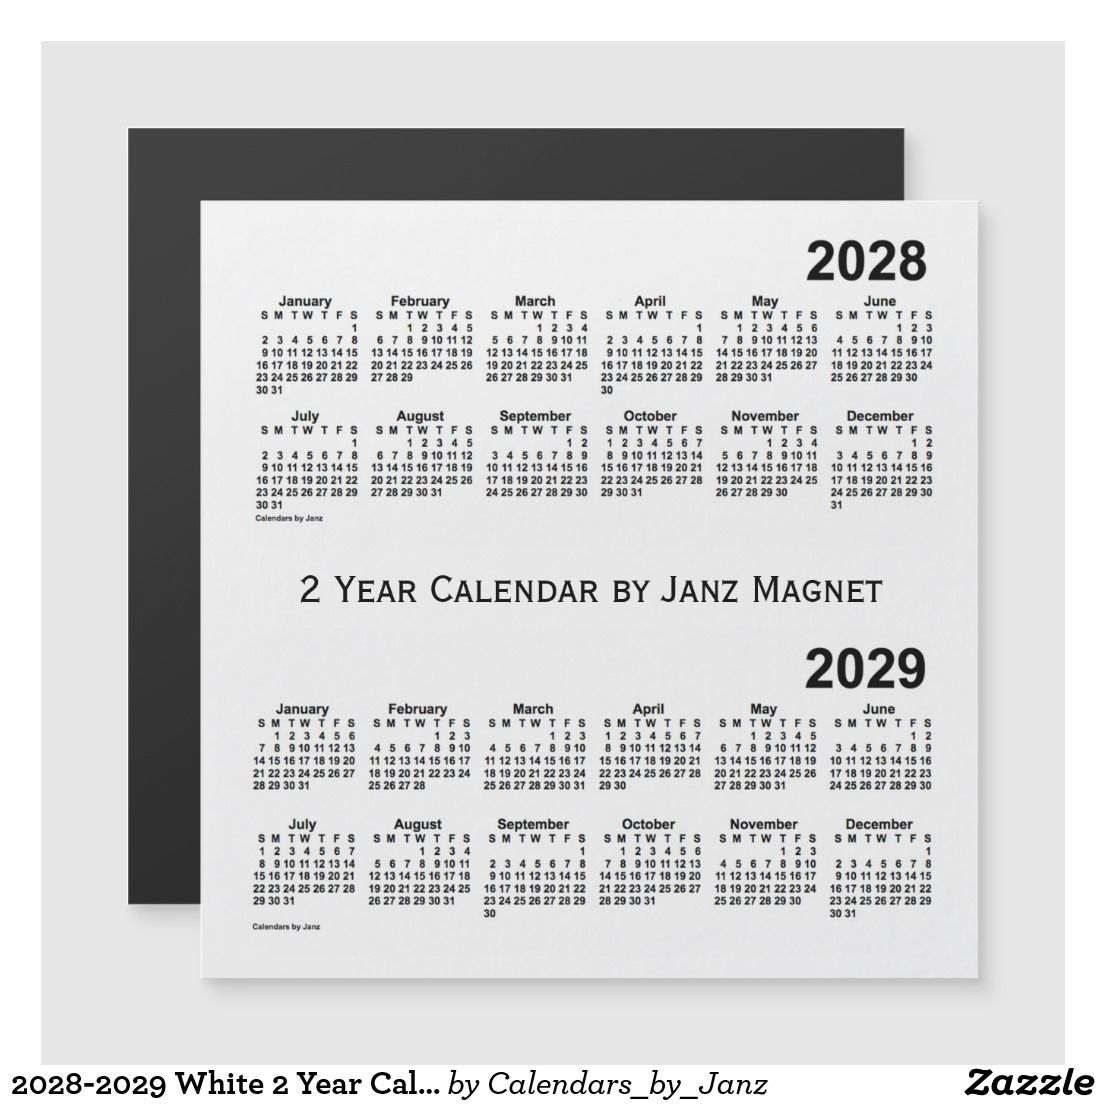 2028 2029 White 2 Year Calendar By Janz Magnet Zazzle Com